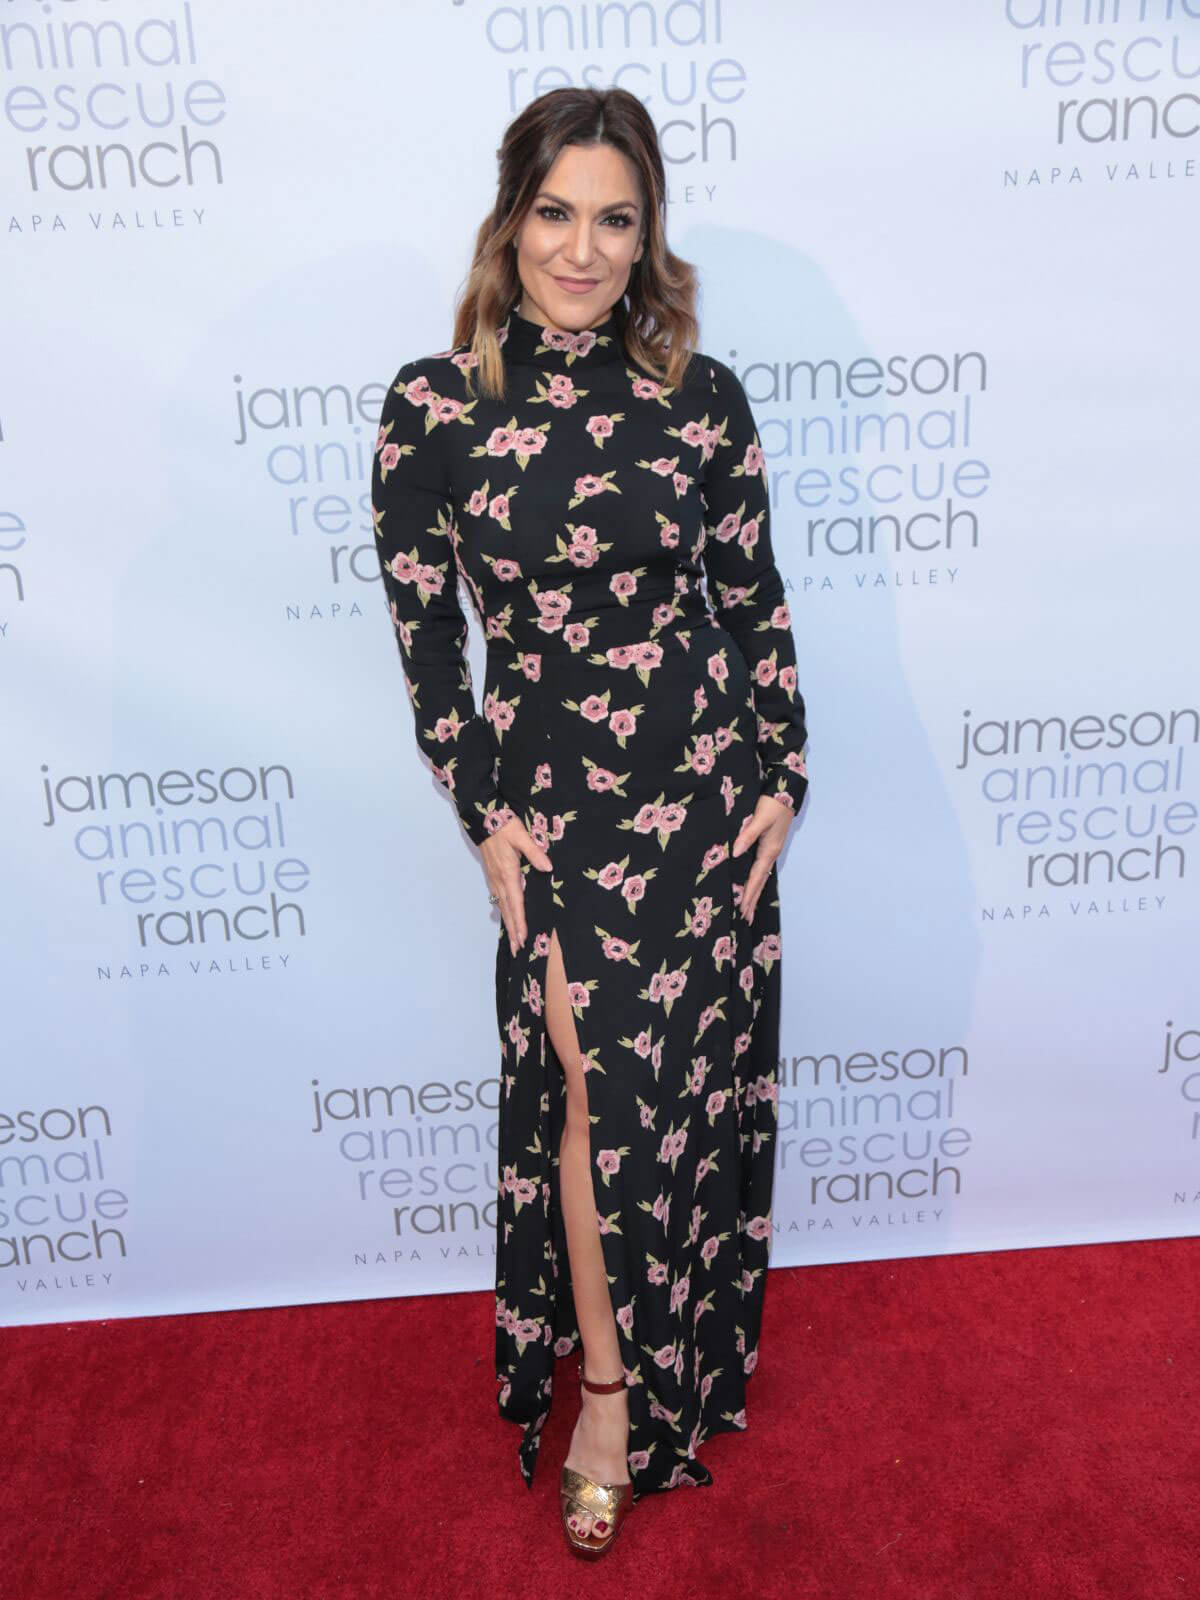 Shoshana Bean Stills at Jameson Animal Rescue Ranch Presents Napa in Need in Beverly Hills